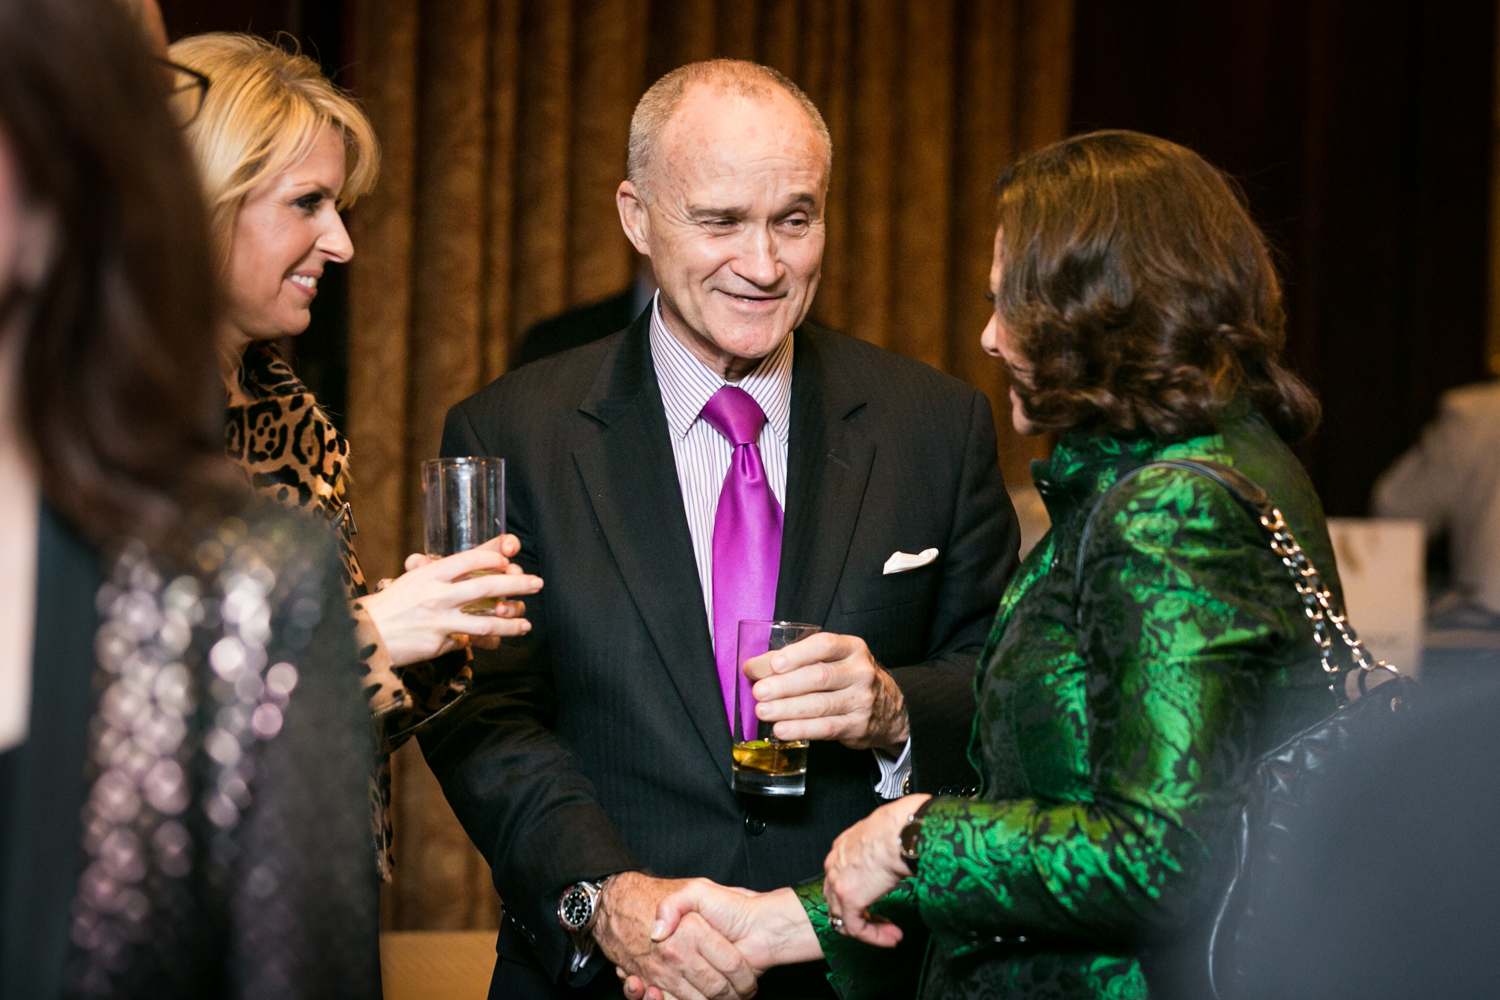 Former NYPD police commissioner, Ray Kelly, shaking hands at an event